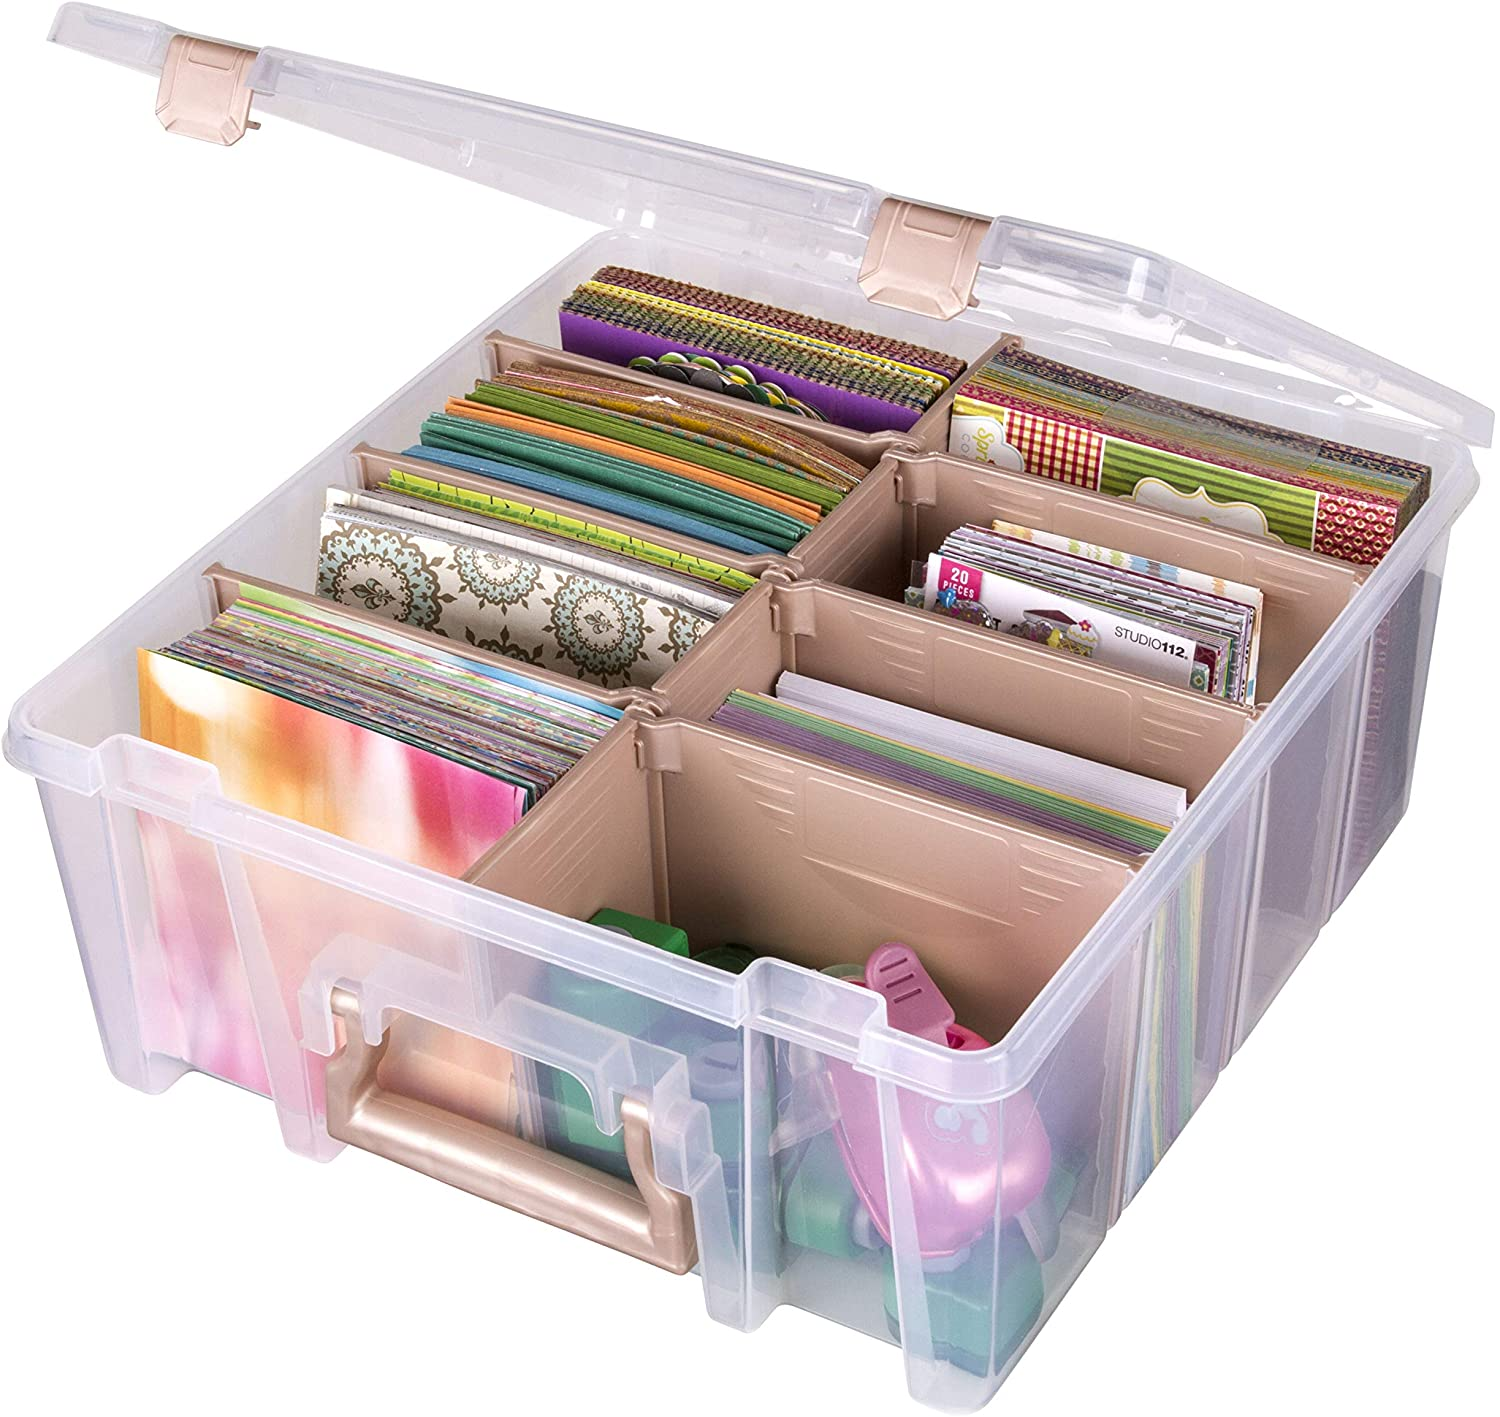 ArtBin 6990RK Super Satchel Double Deep, Portable Art & Craft Organizer with Handle, [1] Plastic Storage Case, Clear with Rose Gold Accents